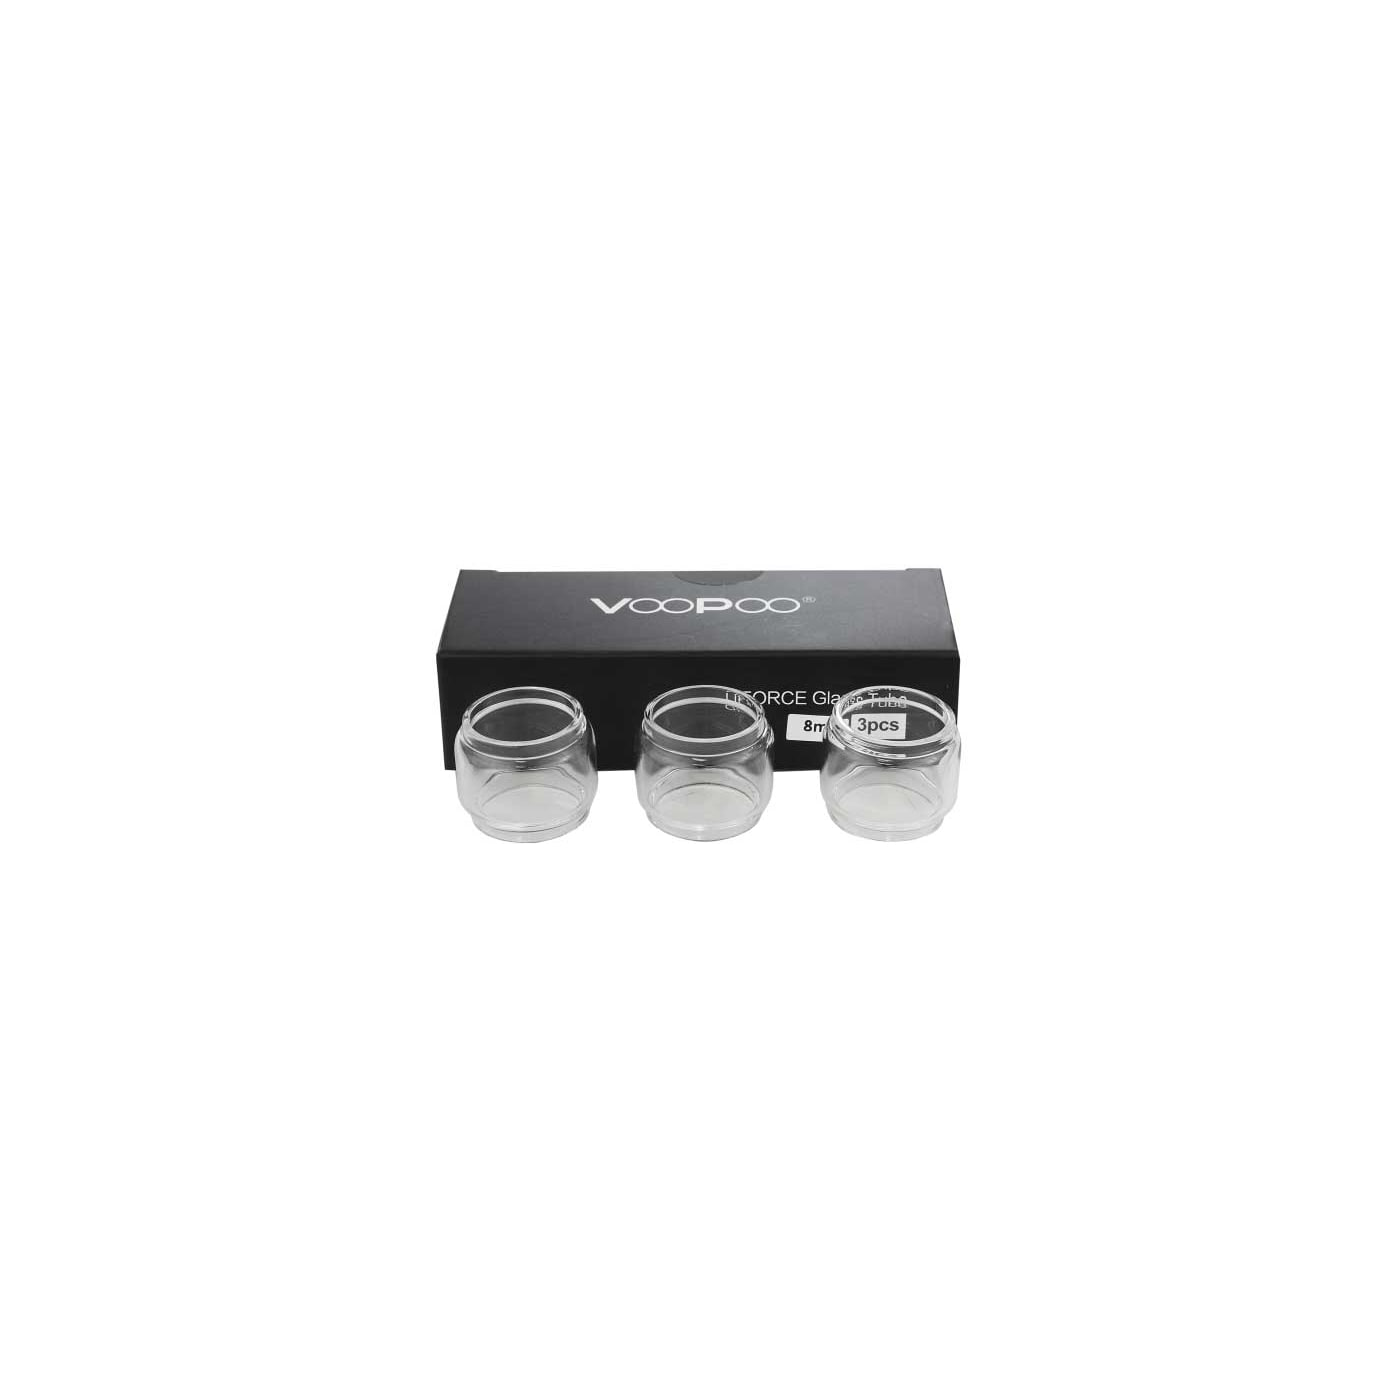 VooPoo UFORCE Replacement Glass - 8 mL - 3 pack